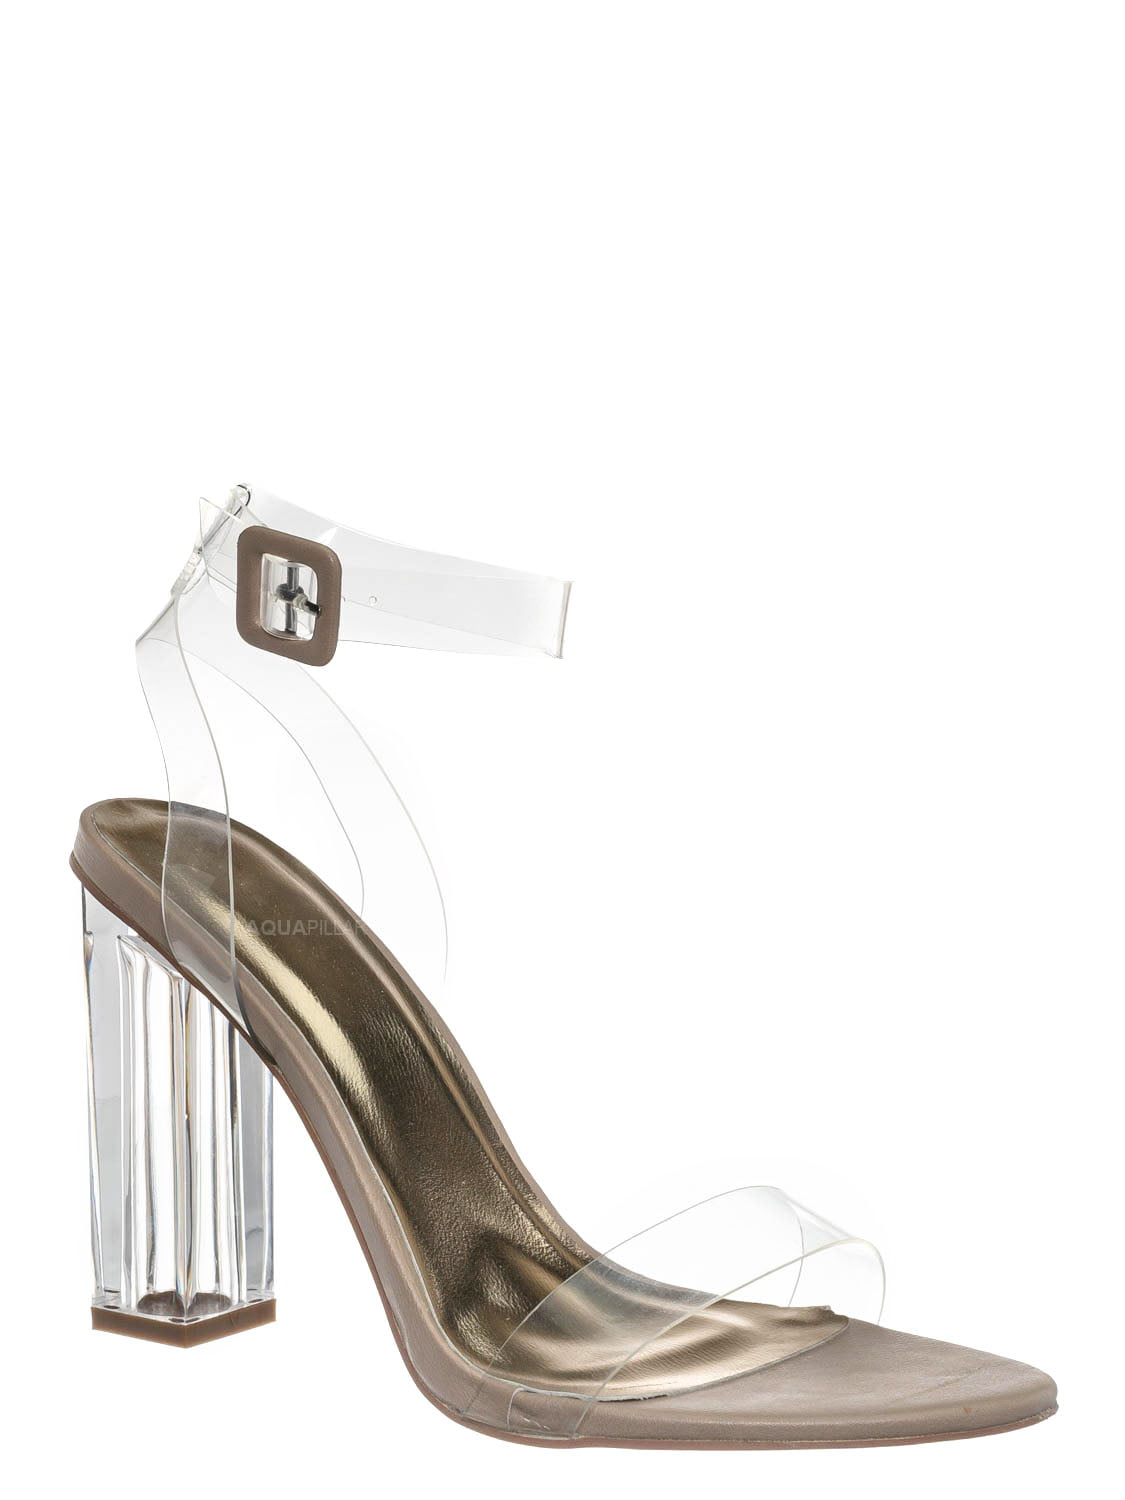 LOL Surprise Accessory Translucent White Sandal with Bow Shoes